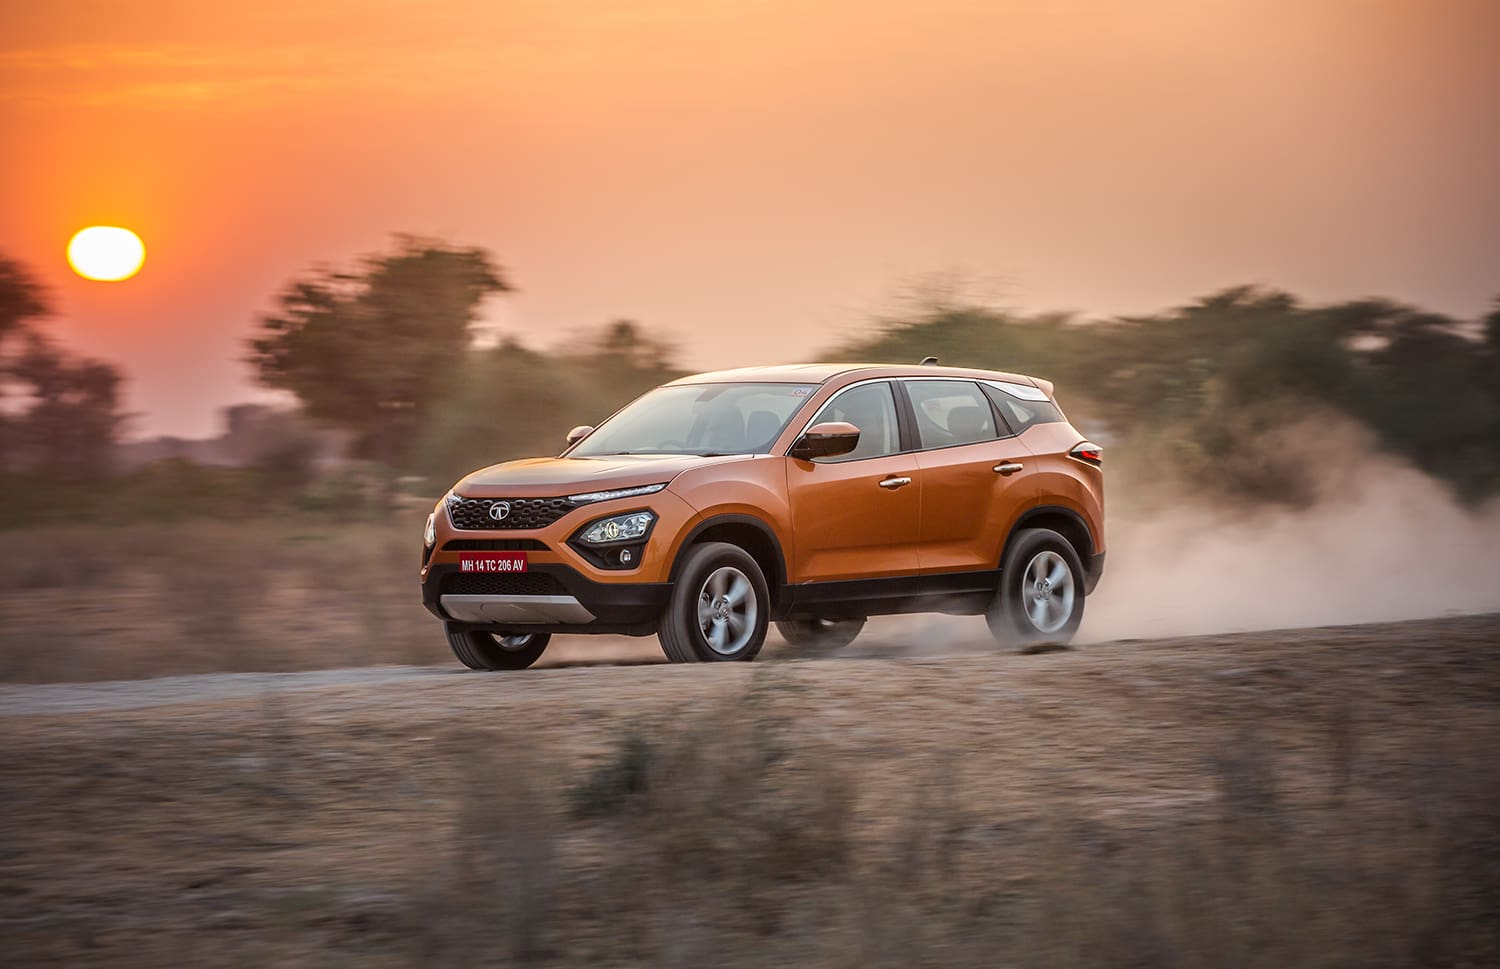 Now You Can Test Drive Tata Harrier At Your Doorstep